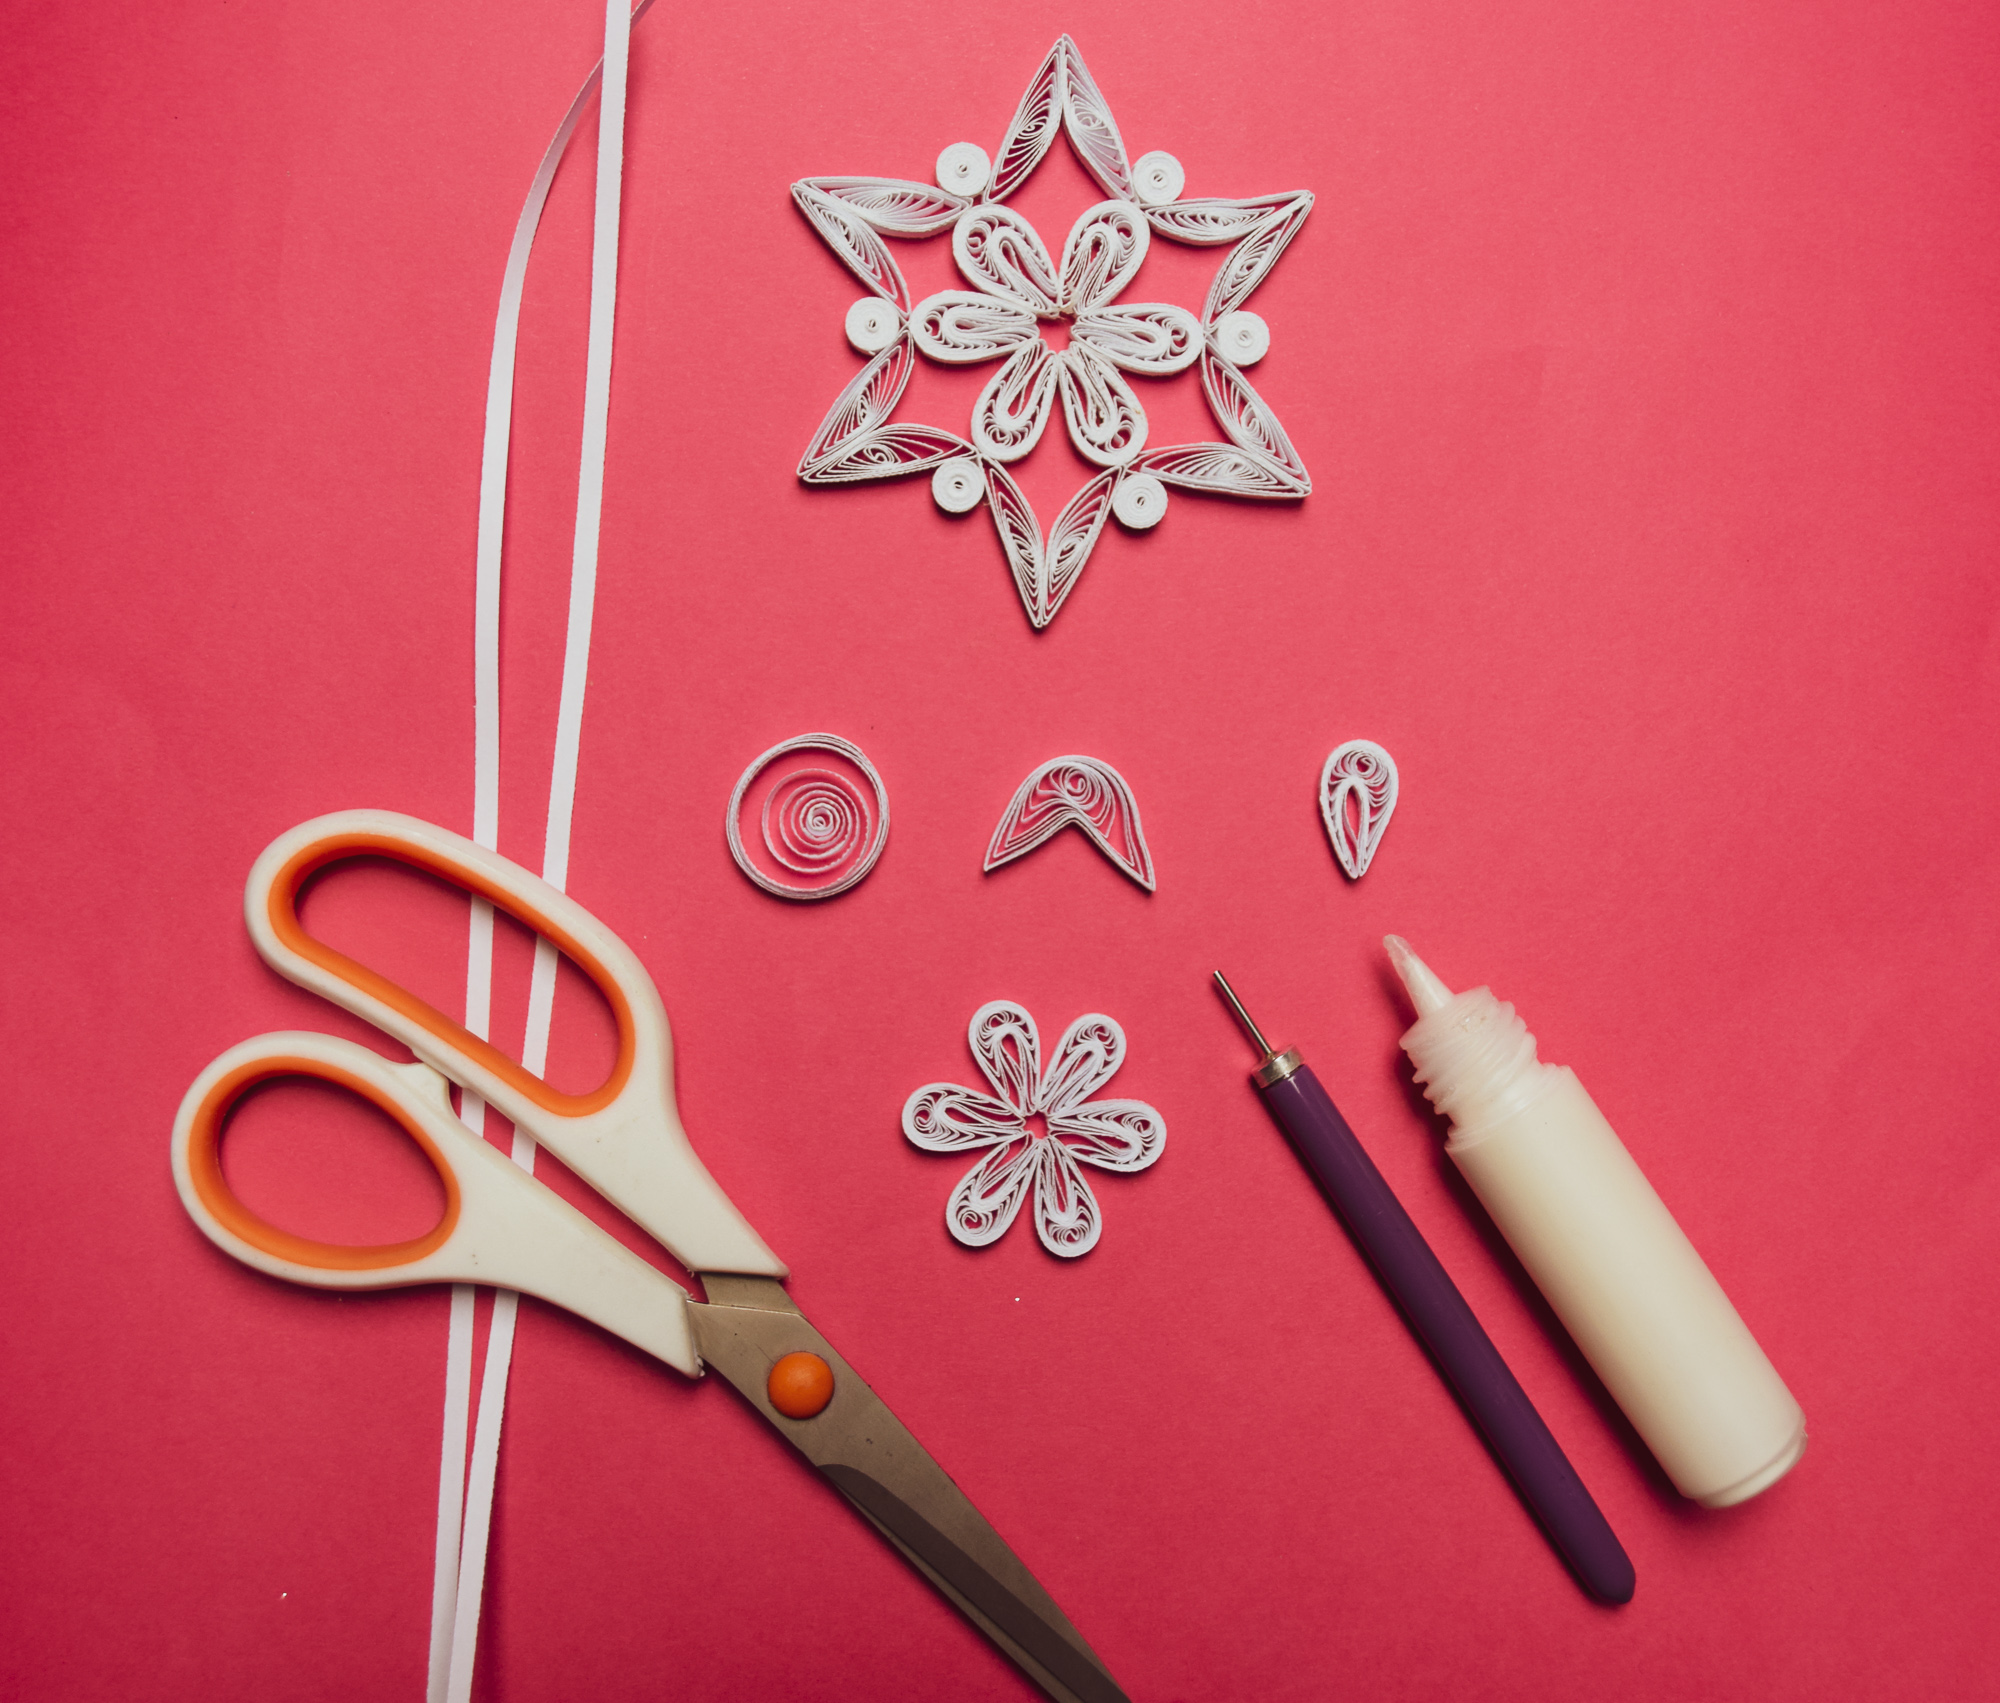 Easy DIY Paper Snowflake Quilling Tutorial to make handmade tree ornaments and gifts for friends #quilling #paperart #ornaments #christmas #crafts #homedecor #paper